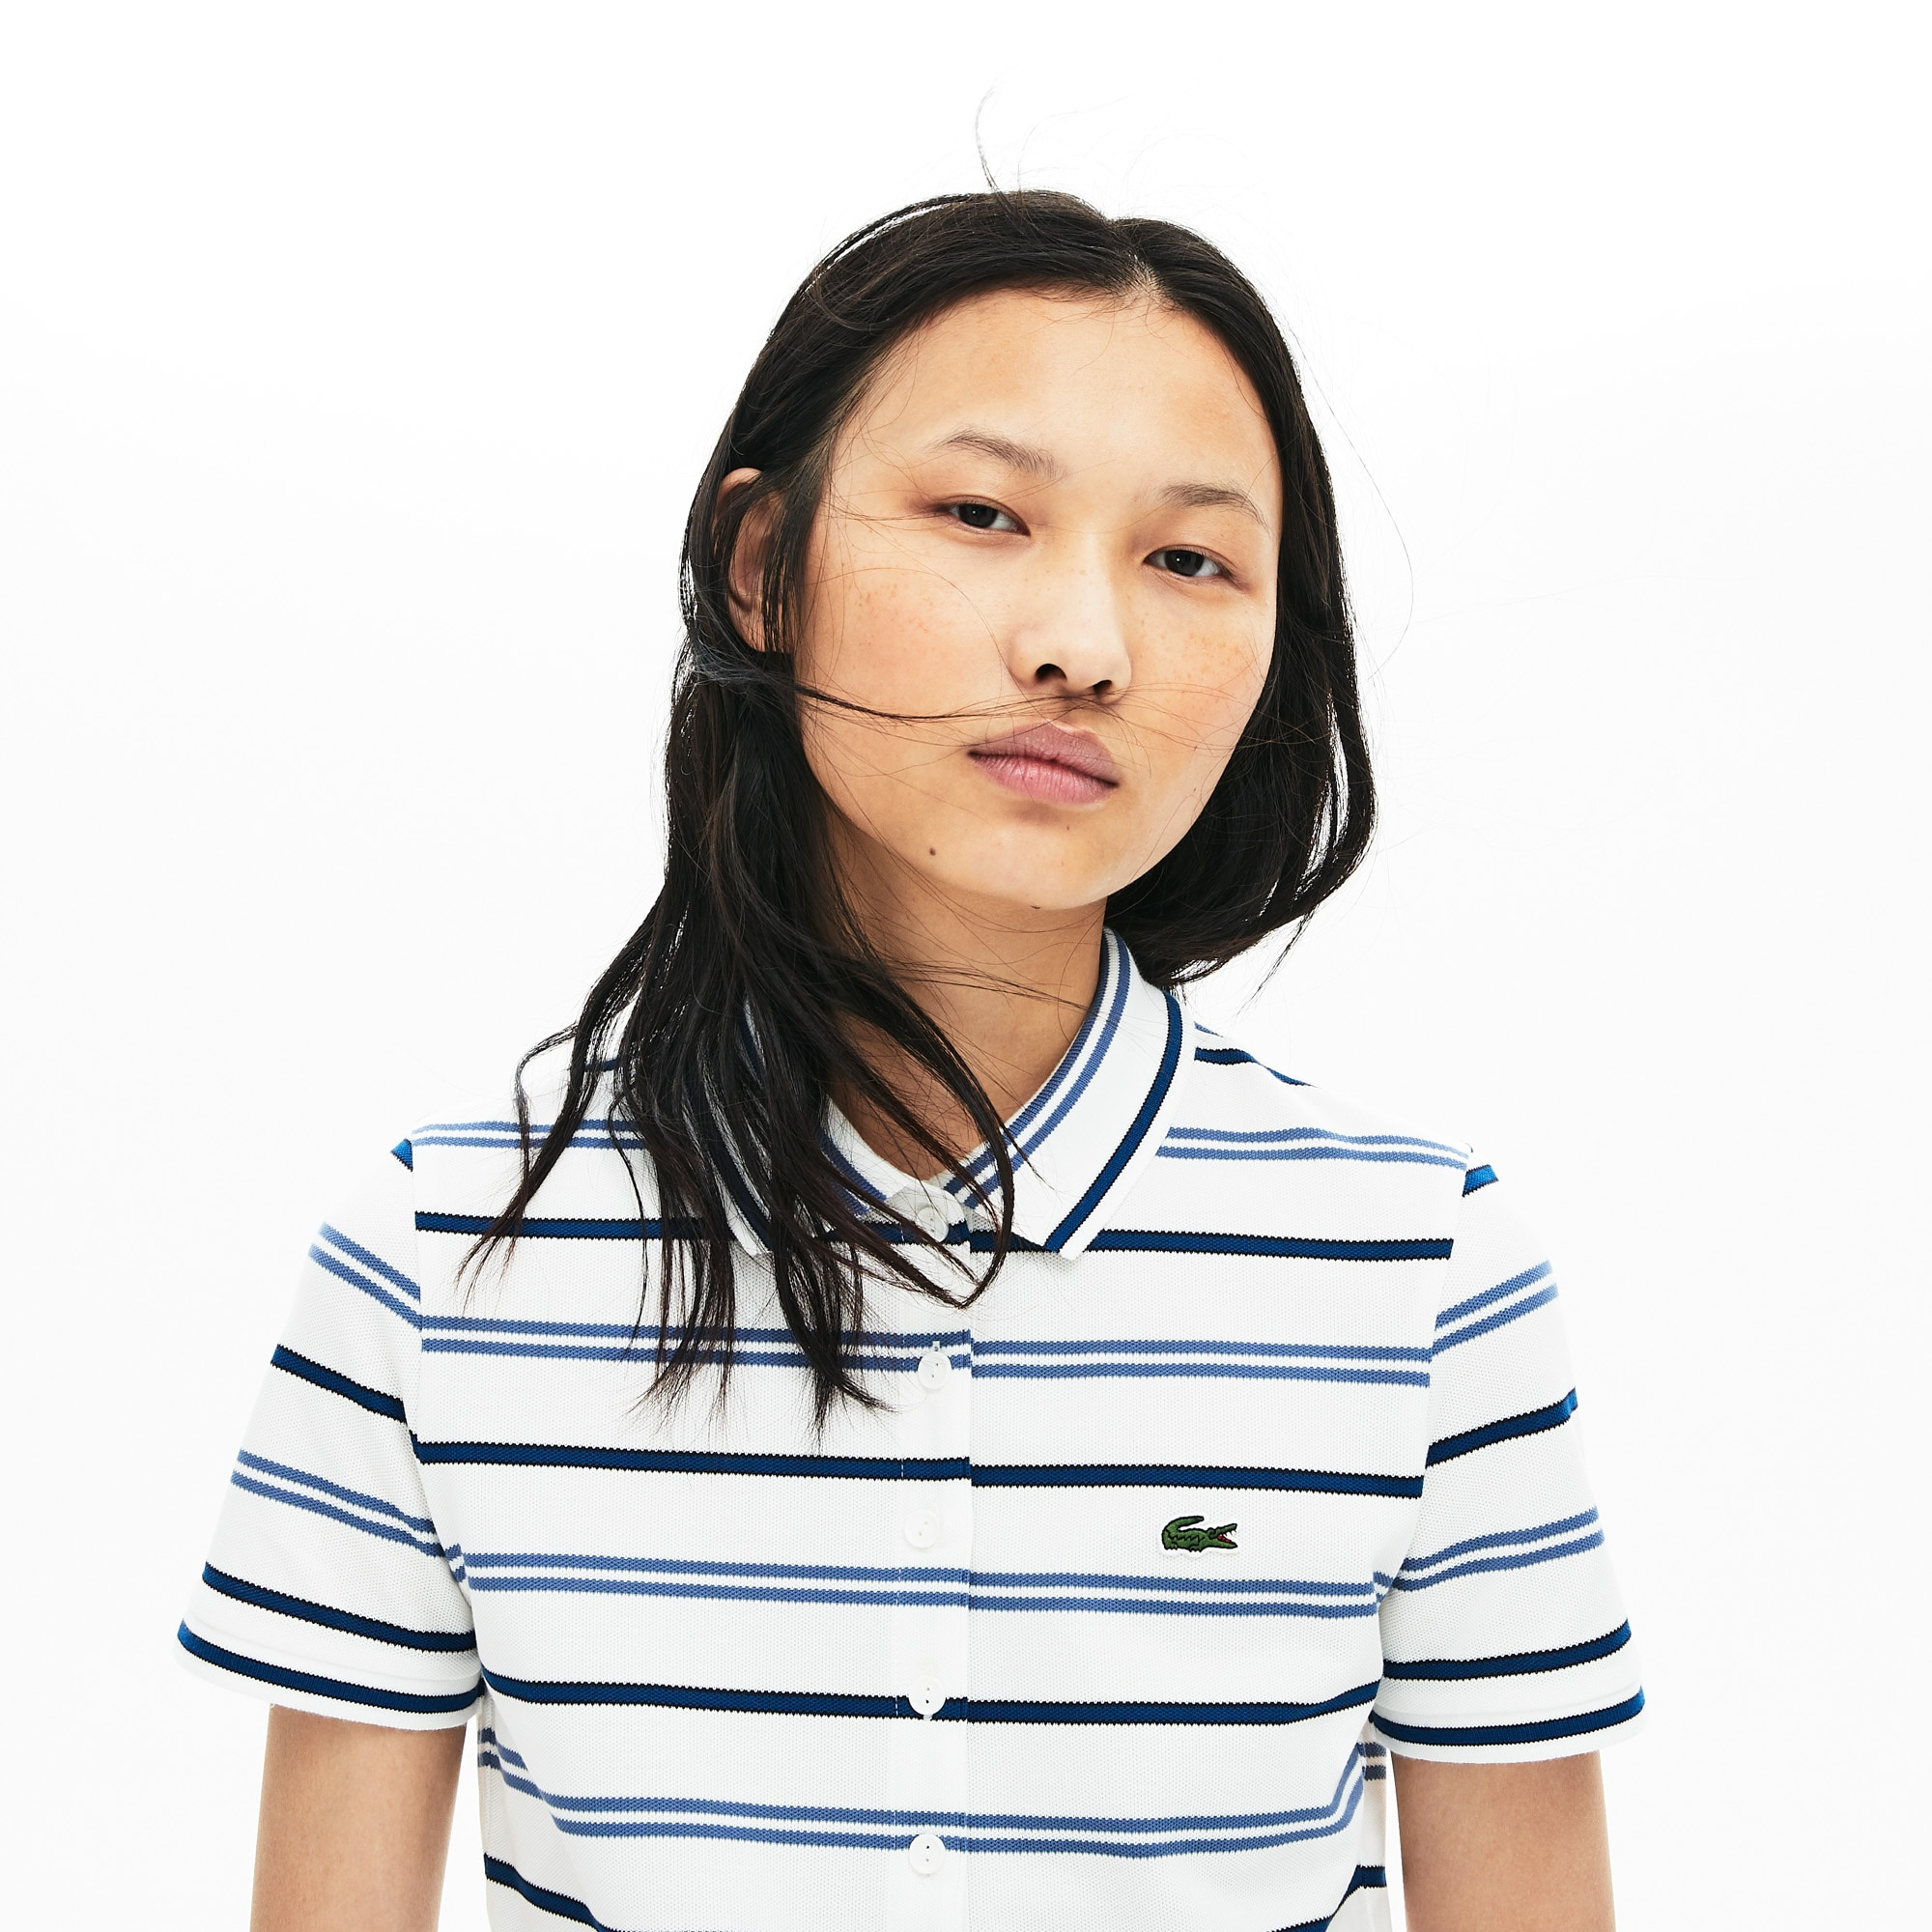 라코스테 Lacoste Womens Slim Fit Striped Stretch Pique Polo Shirt,White / Blue / Navy Blue • 14V